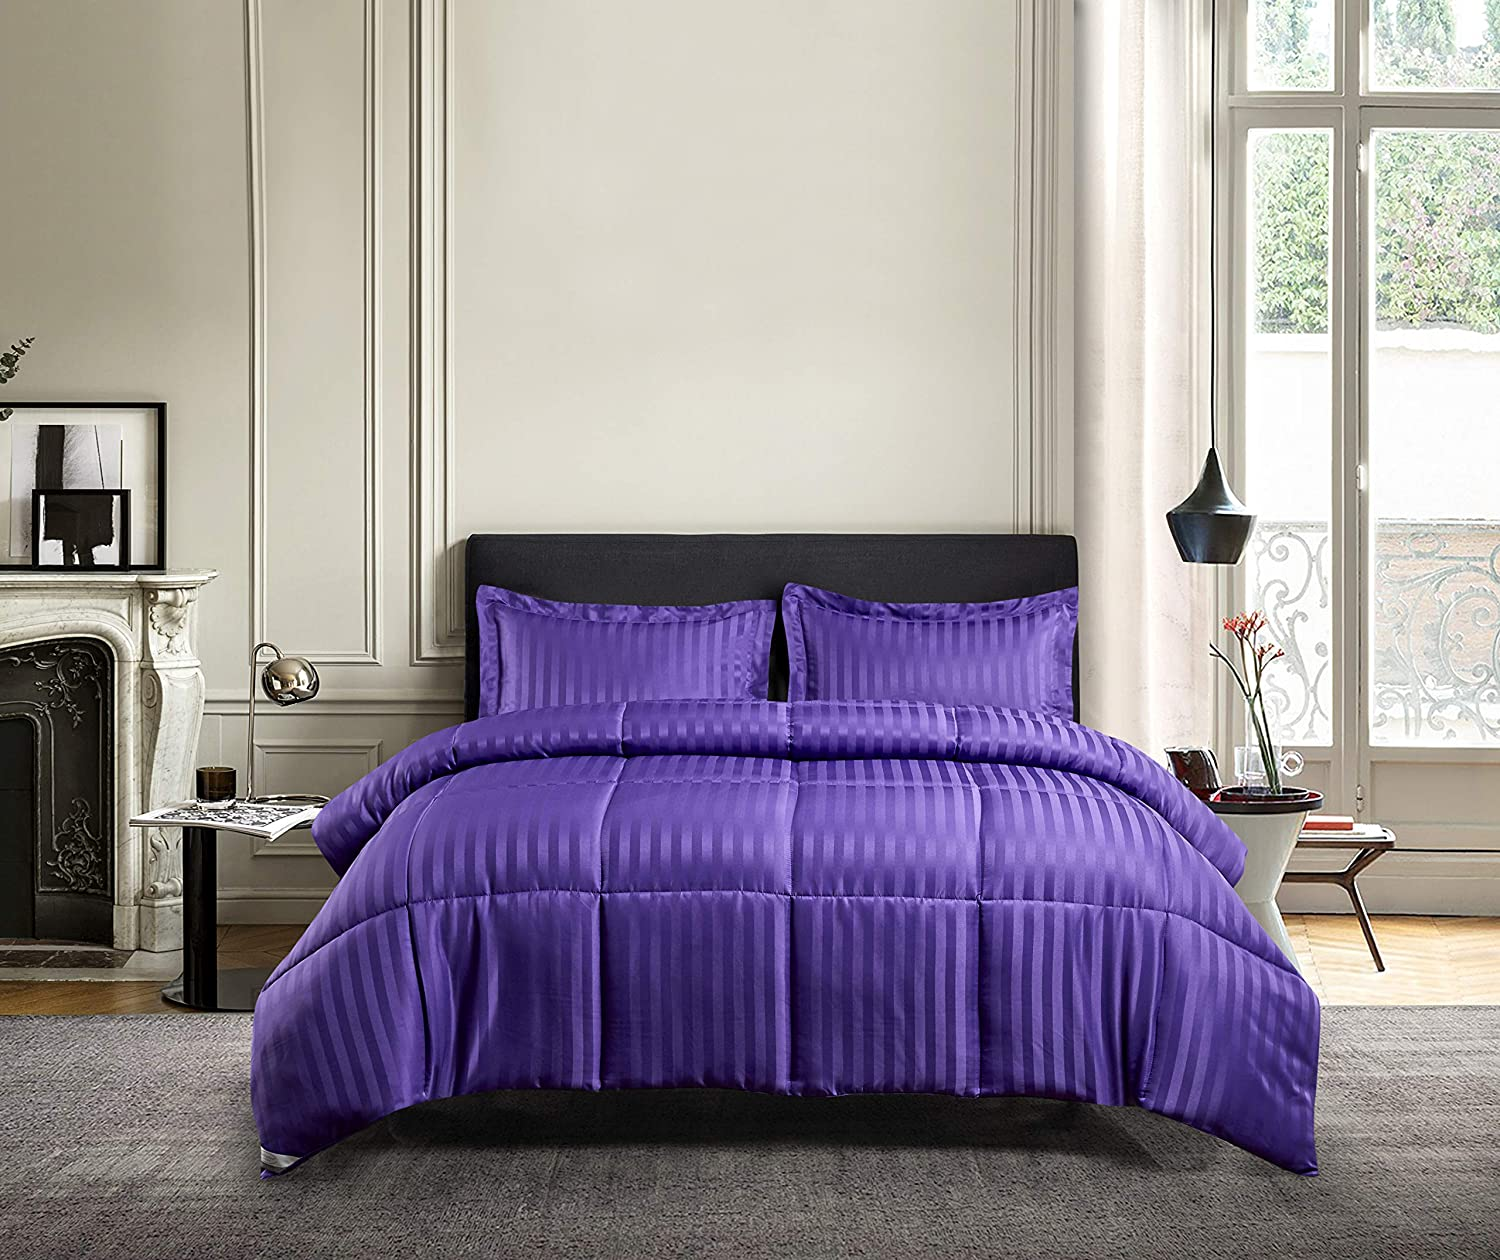 Blue Ridge Home Fashions DA-C3-KI Microfiber Damask Stripe Solid 3 Pieces Reversible Down Alternative Comforter Set - All Season Warmth, King, Purple